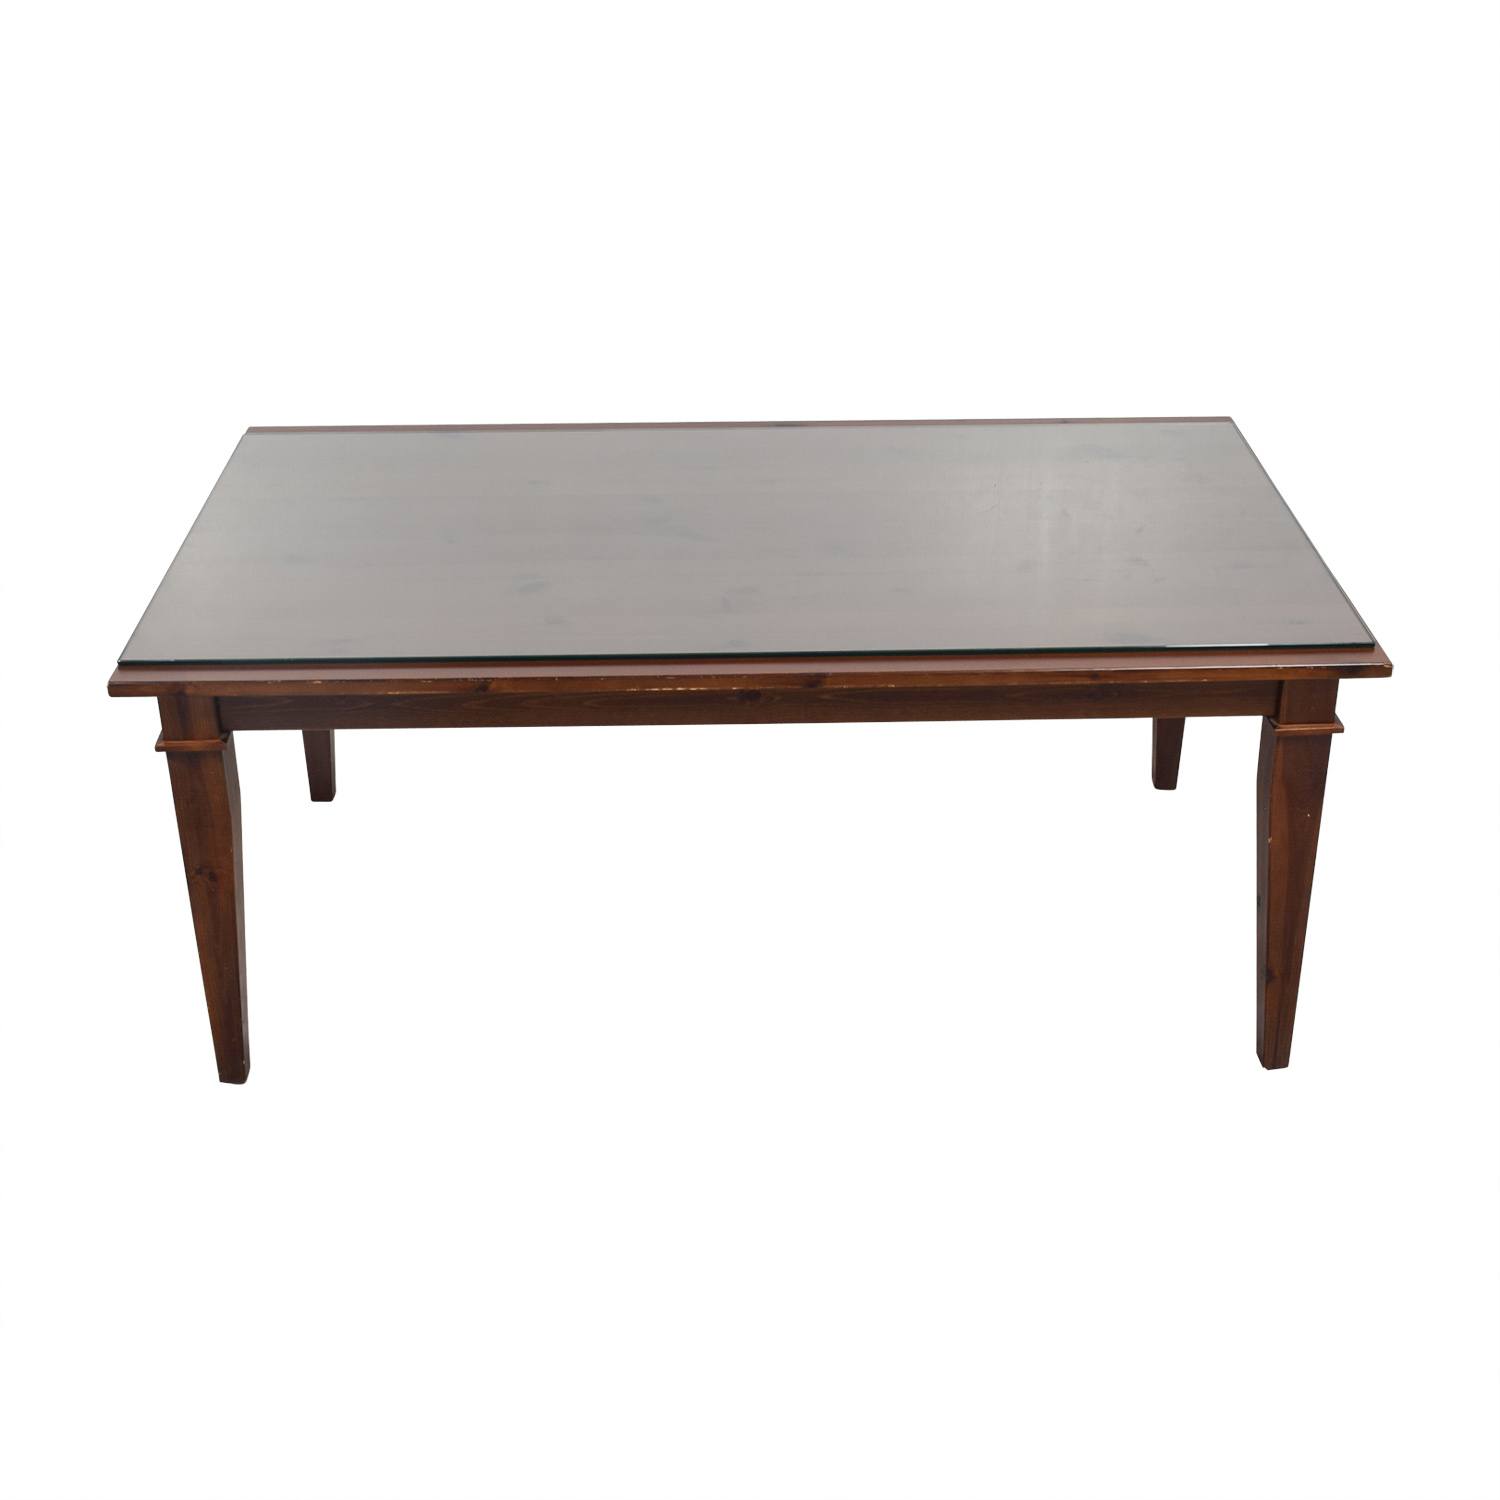 Pottery Barn Pottery Barn Dining Table with Glass Top coupon